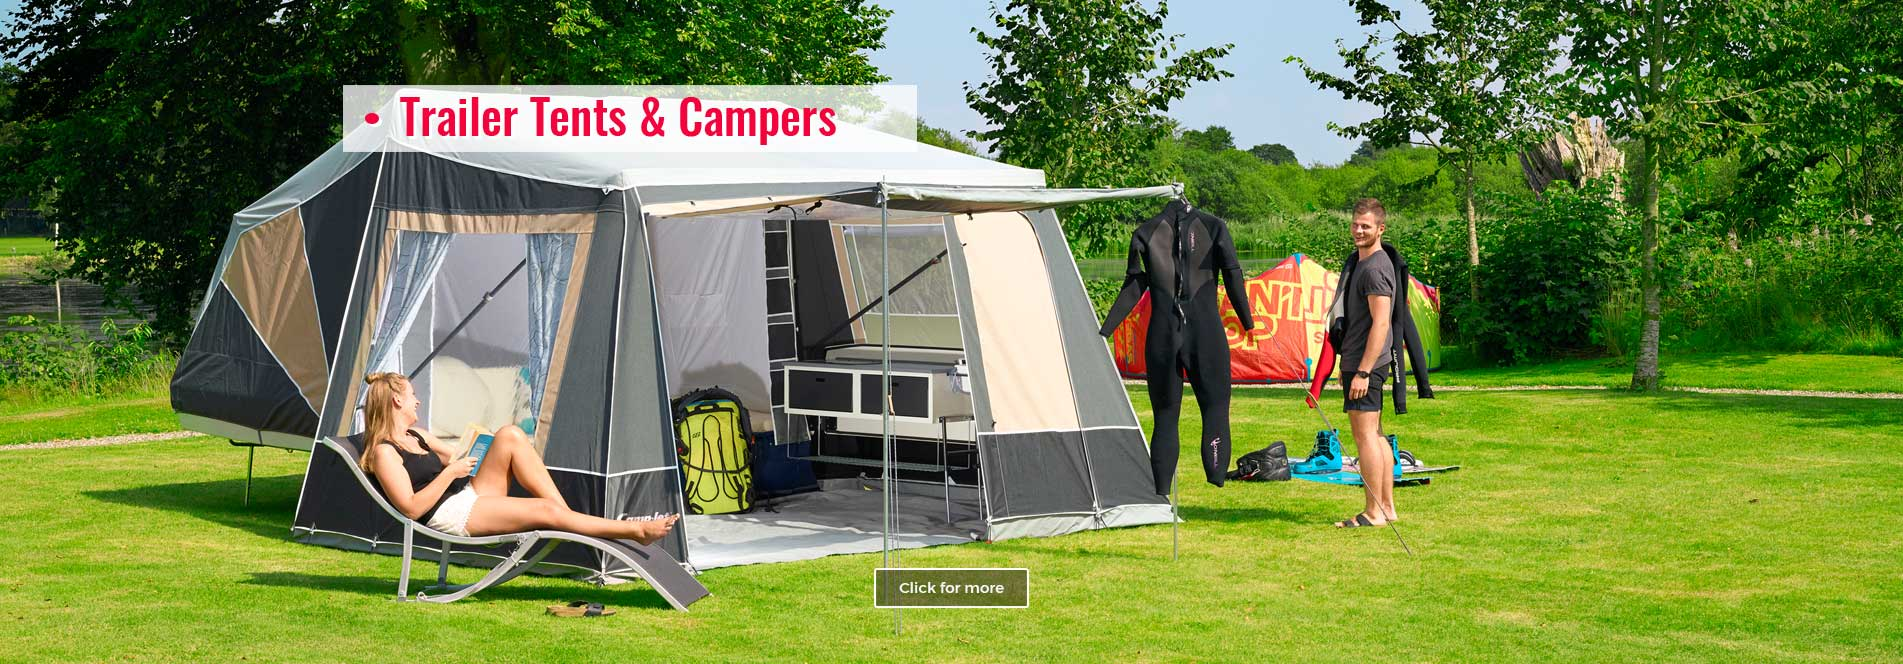 ee35389170561b ... of the UK's leading retailers of camping equipment and outdoor  accessories. Our Website includes a comprehensive and secure online  shopping facility, ...